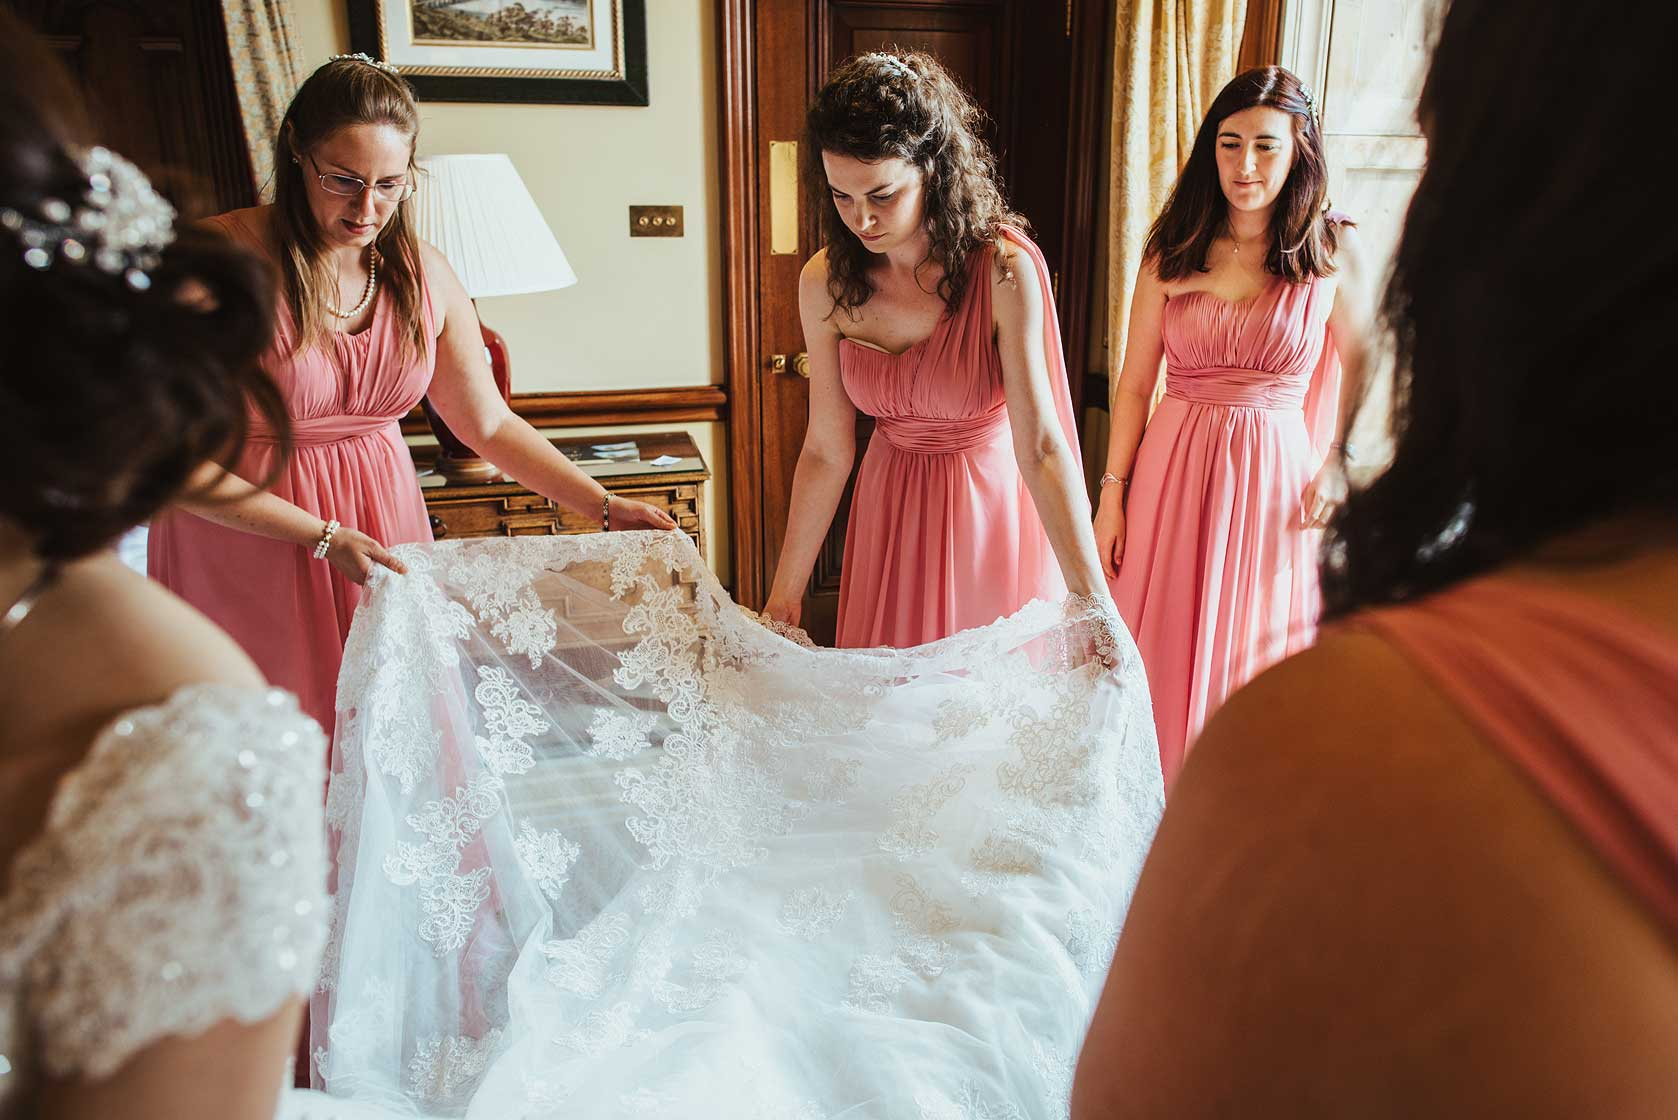 Bridesmaids checking the wedding dress at Buckinghamshire wedding